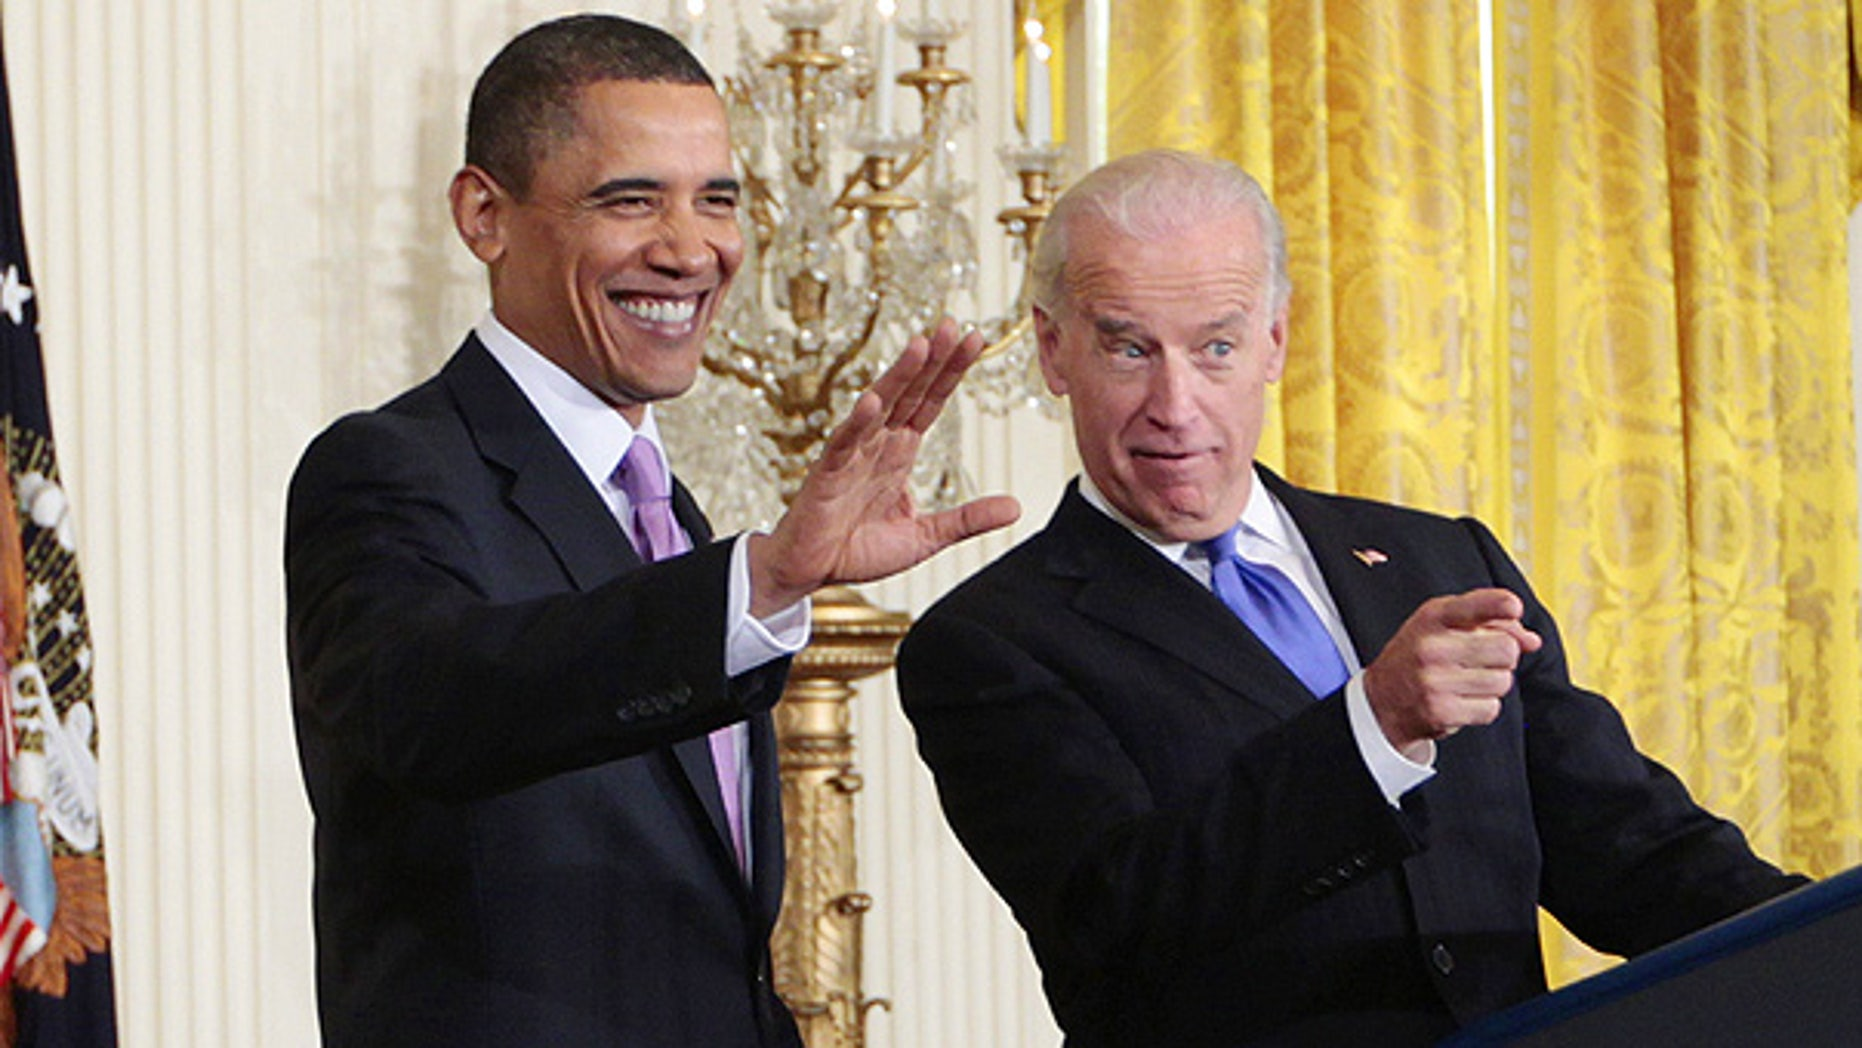 Jan. 21: President Obama and Vice President Biden acknowledge mayors before a White House address.